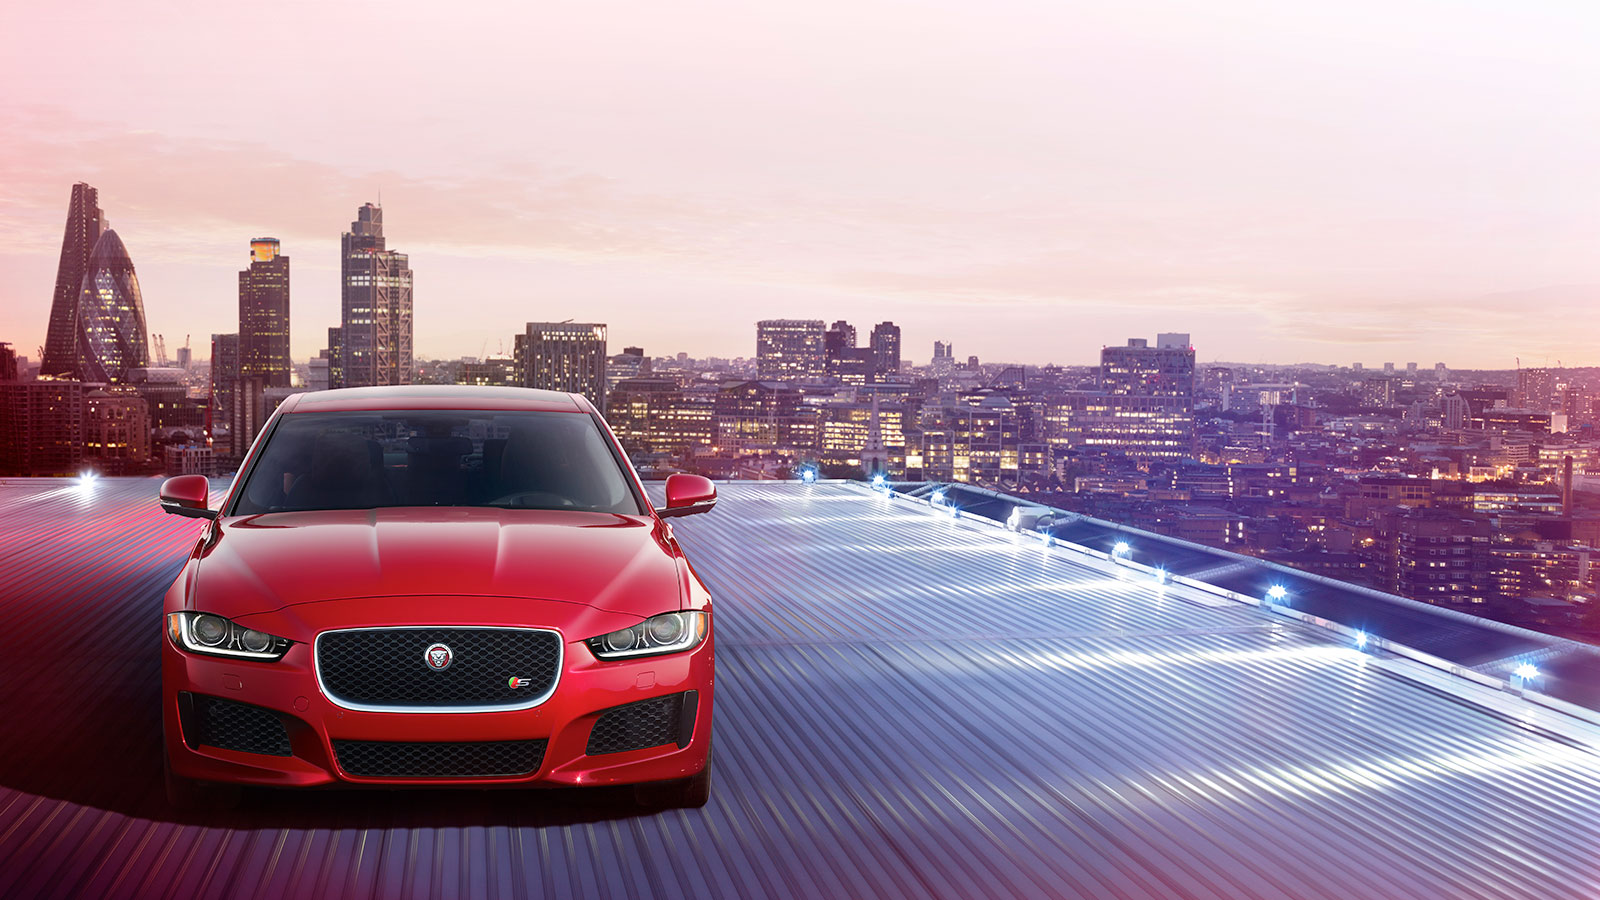 XE on a lit rooftop above a city skyline.